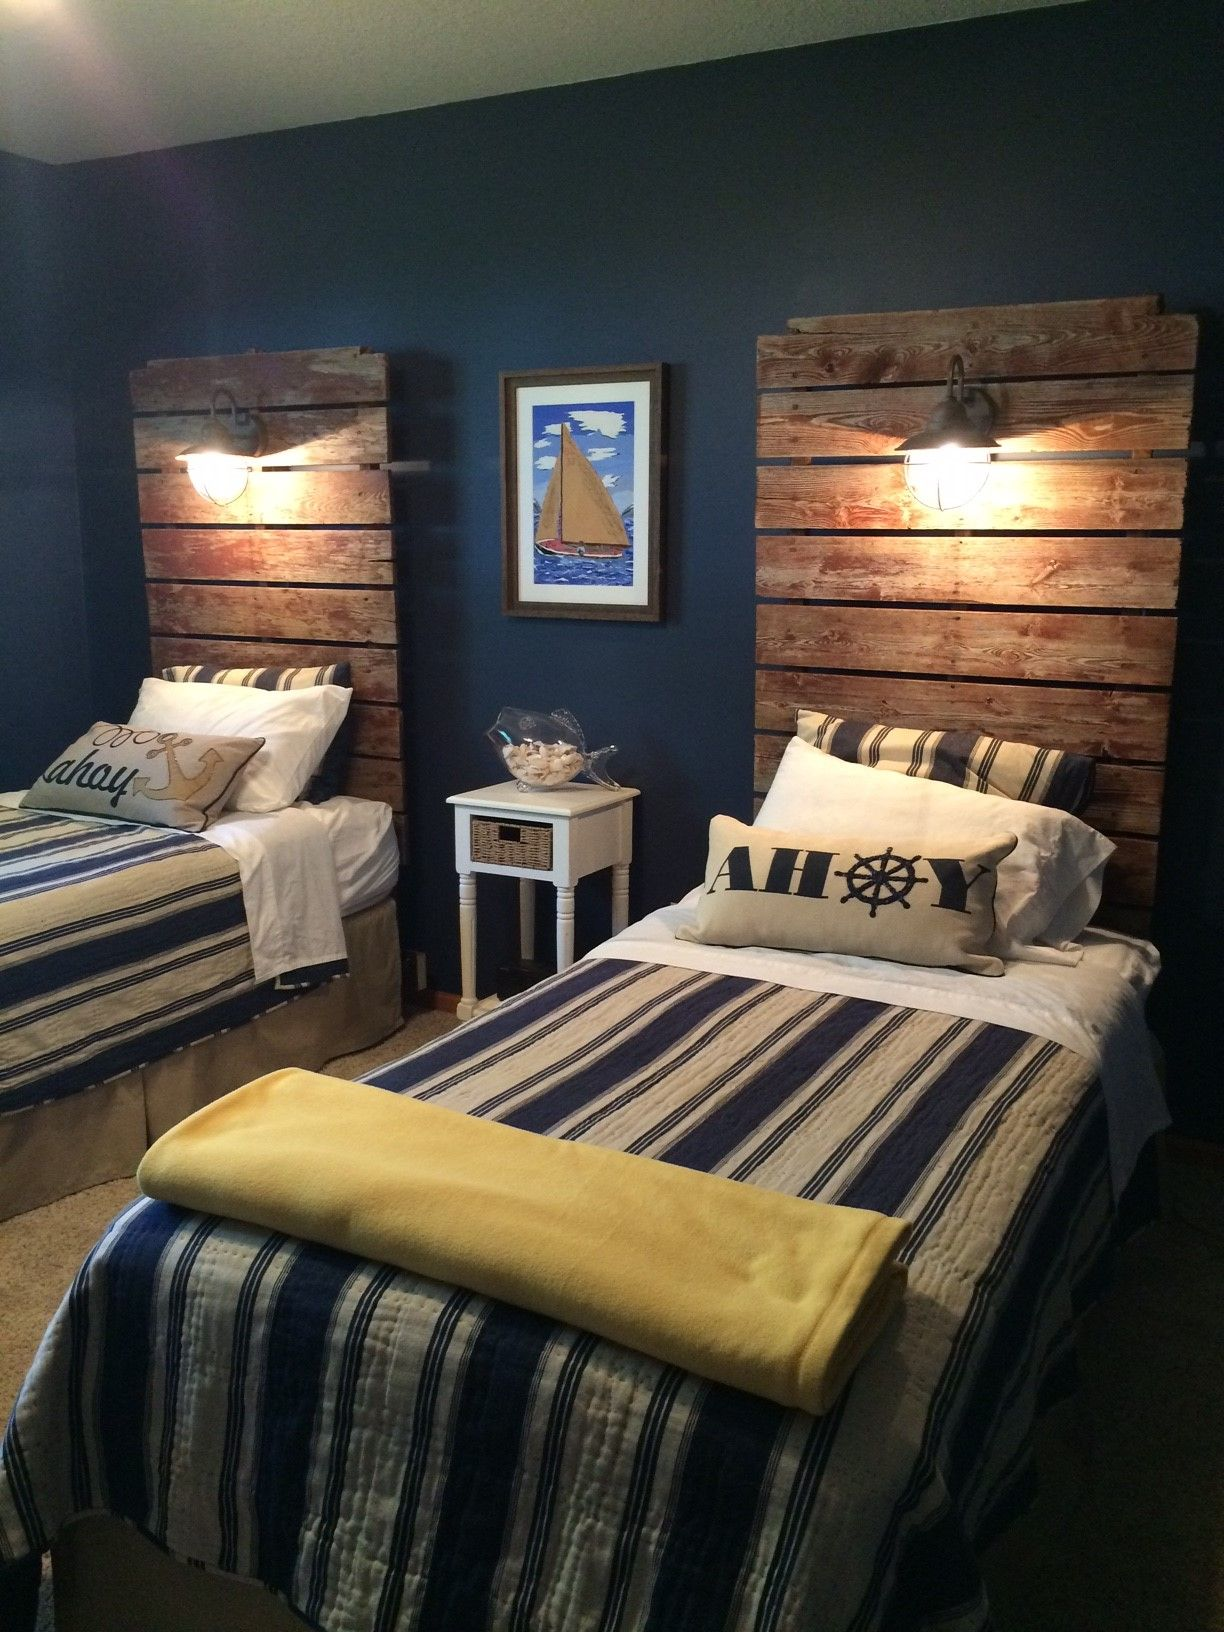 Headboards Made From Our Old Dock Sections With Wired Lights So Cute Reclaimed Wood Dock Section Nautical Twin Beds Home Decor Bedroom Boys Bedroom Furniture Guest Bedrooms